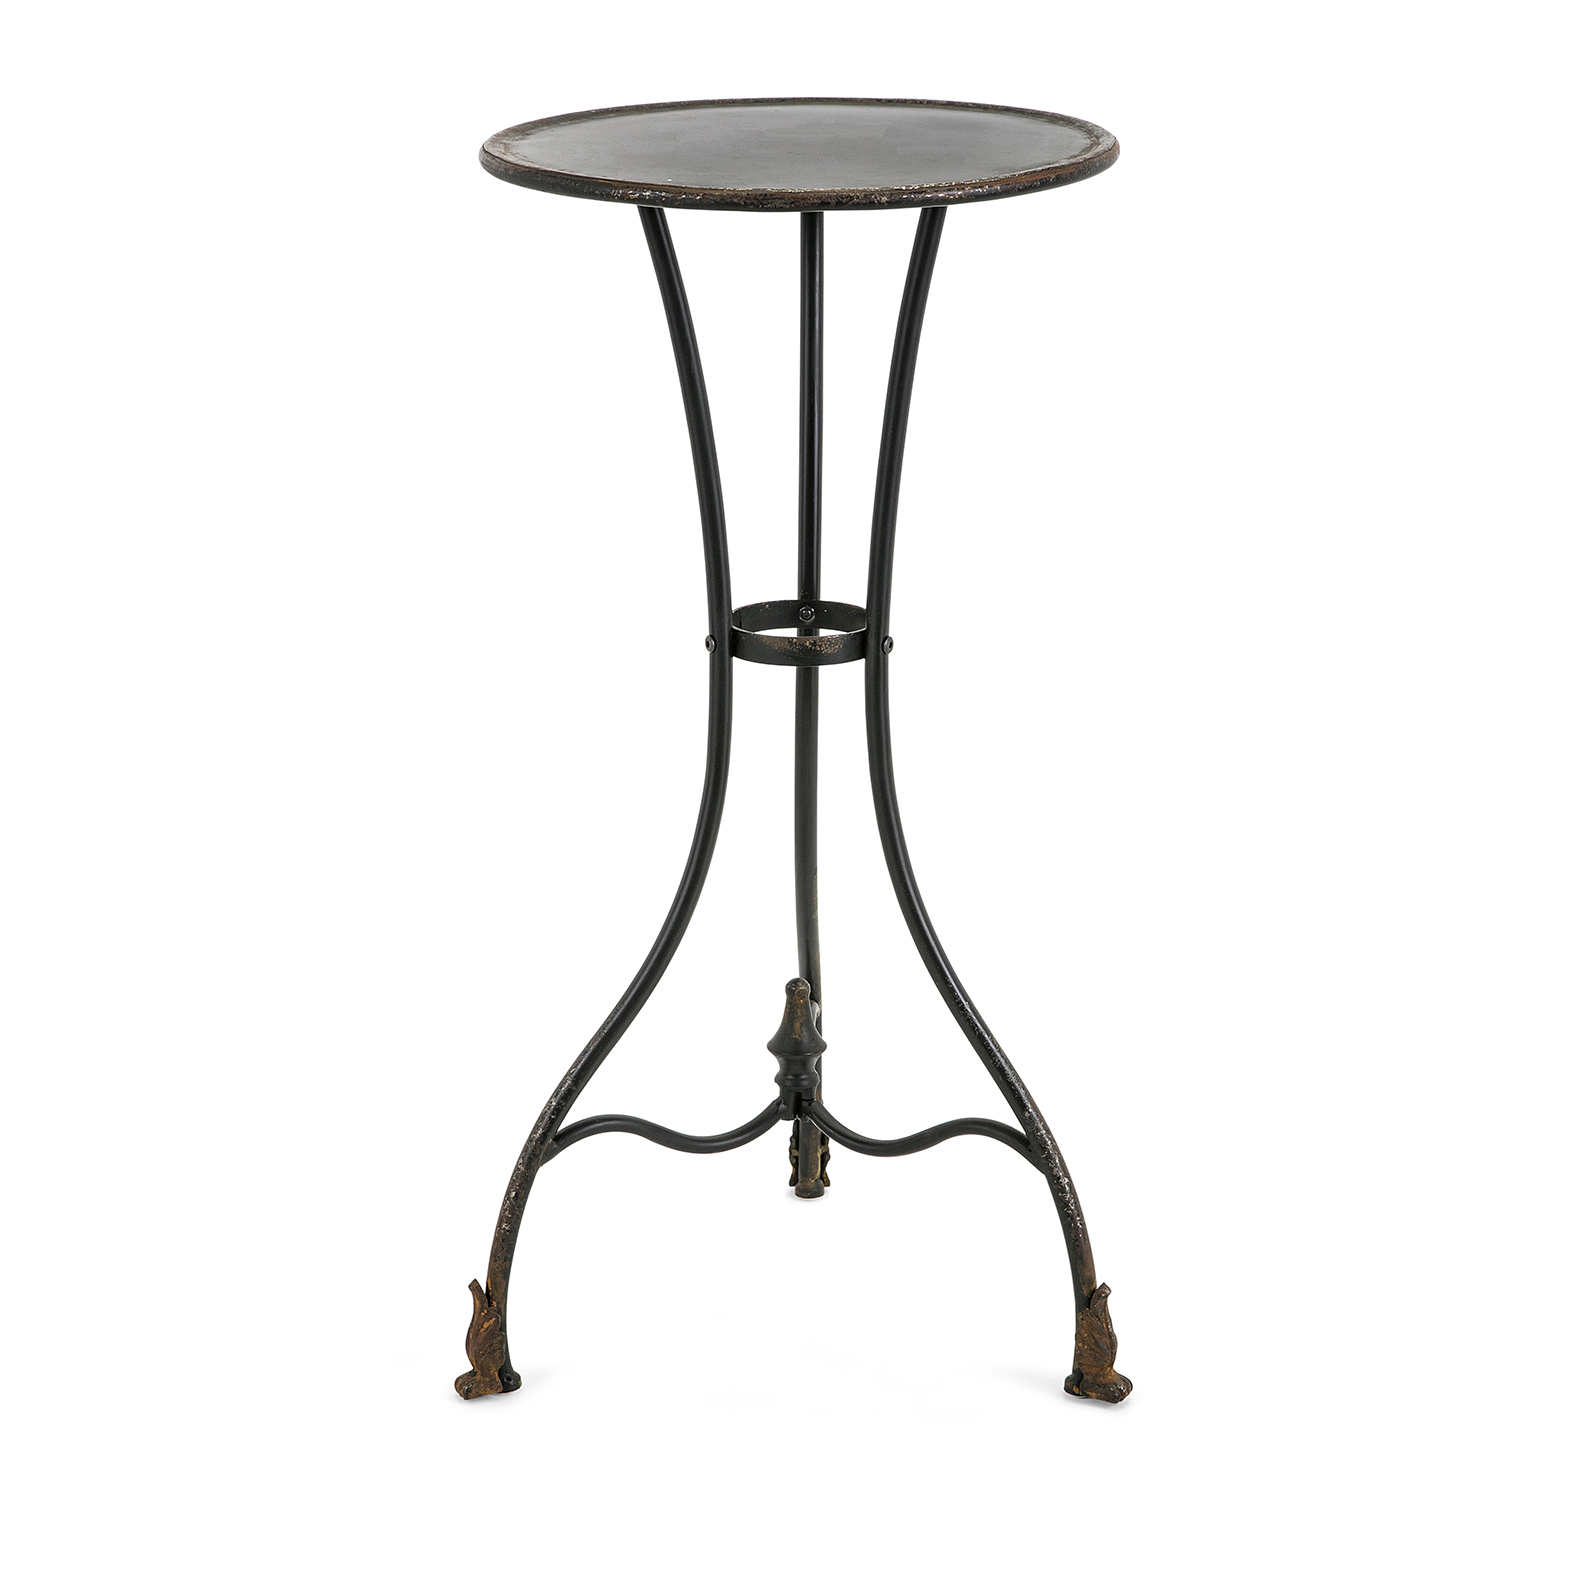 cliffton large metal accent table roost and galley slim round tables pulaski corner curio cabinet end with light attached outside storage box dining room centerpiece ideas coffee